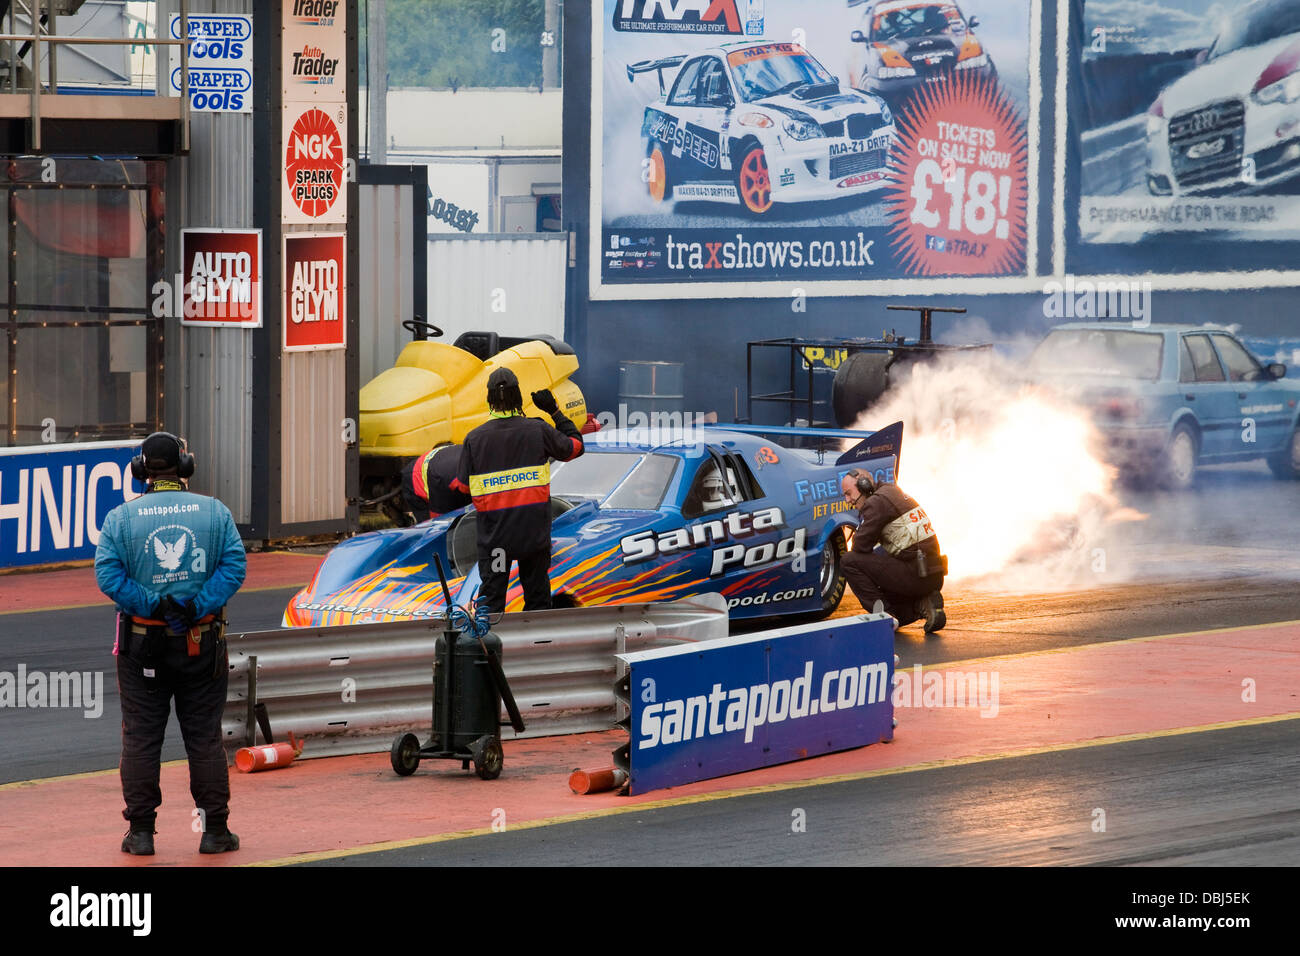 Jet Funny Car pilot Martin Hill takes to the track with Fire force 3 Santa pod Raceway - Stock Image